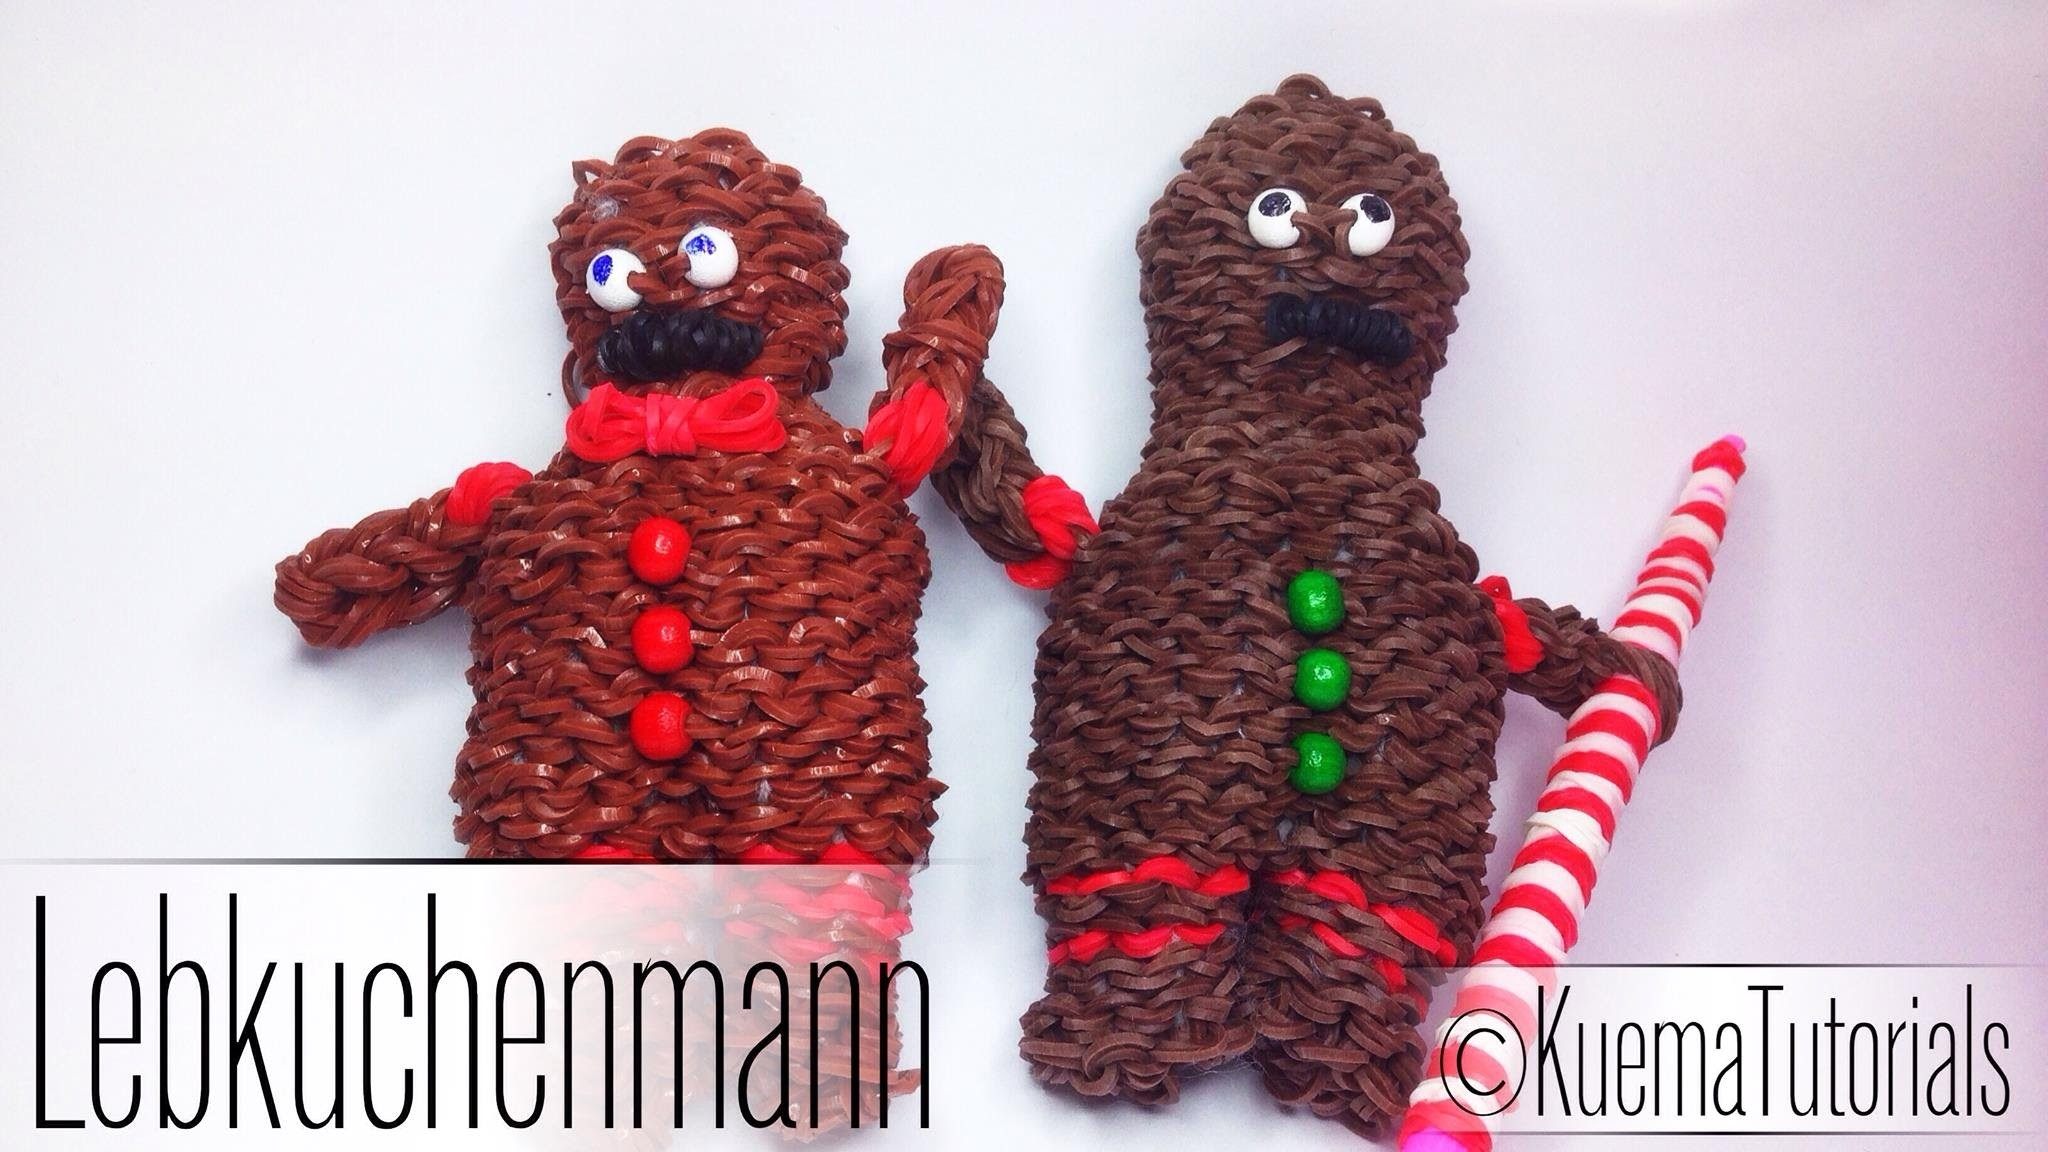 Rainbow Loom 3D Lebkuchenmann. Gingerbread Man